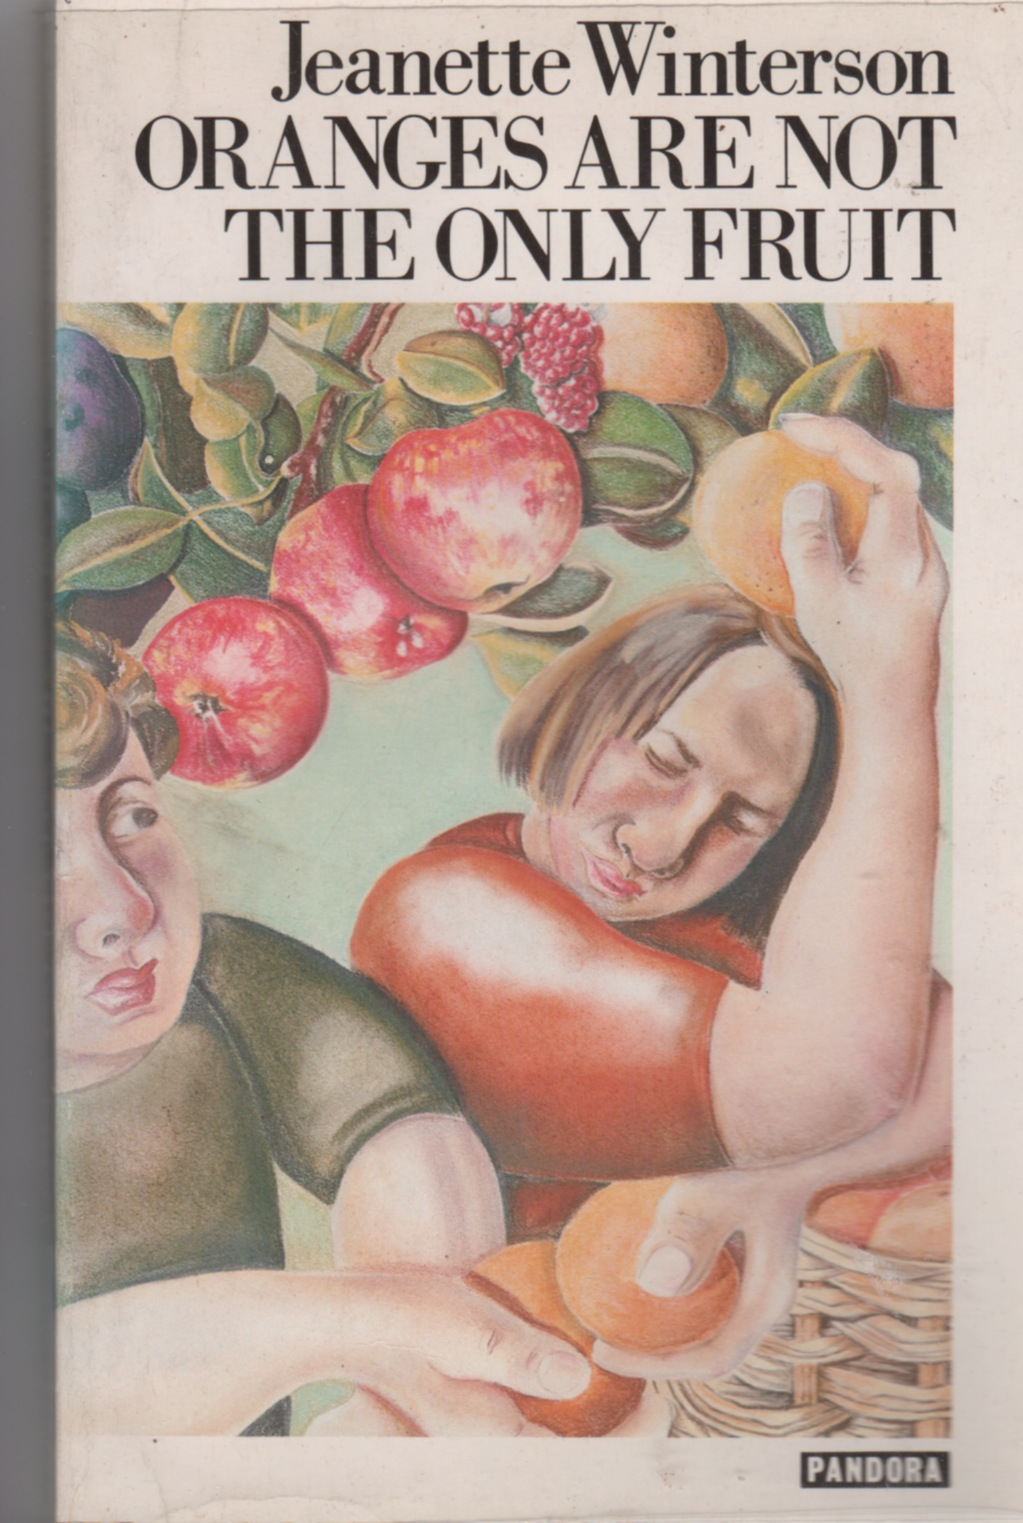 critical essay oranges are not the only fruit Study guide for oranges are not the only fruit oranges are not the only fruit study guide contains a biography of jeanette winterson, literature essays, quiz questions, major themes, characters, and a full summary and analysis.